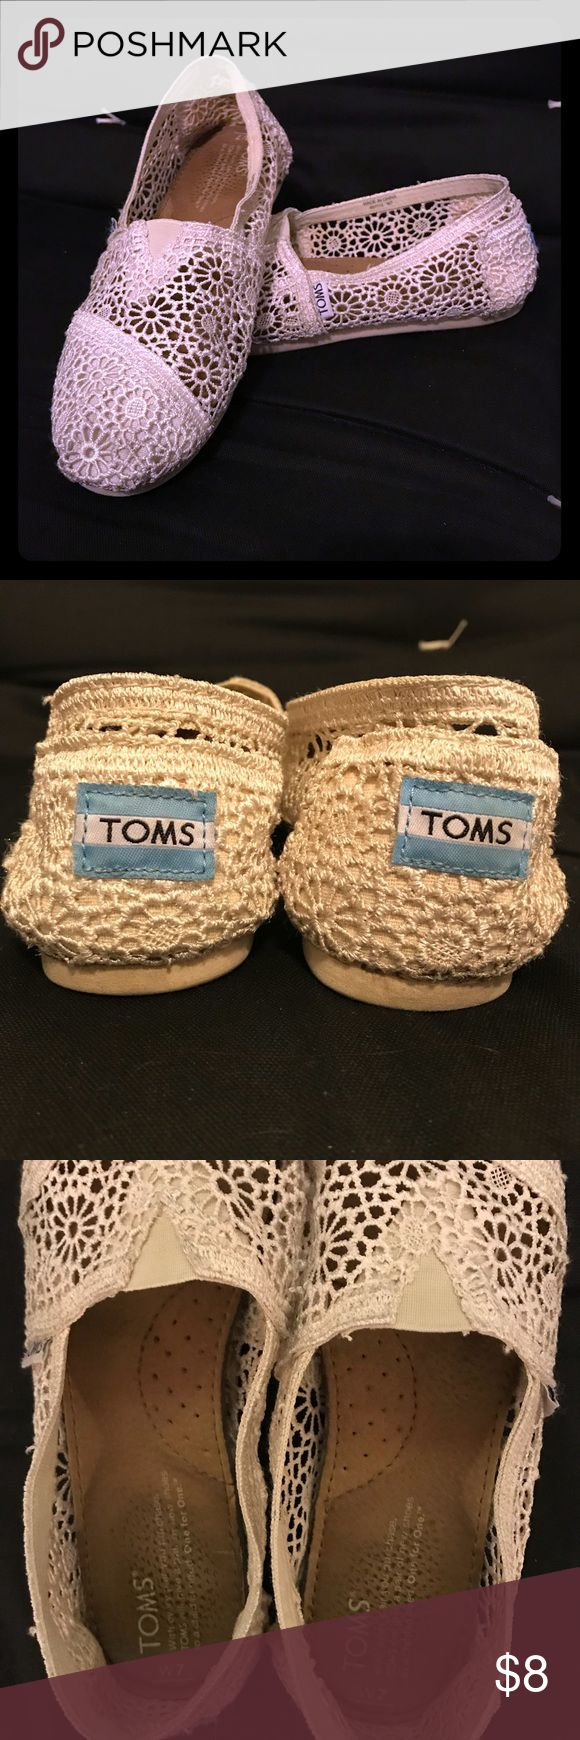 TOMS Crochet Classic Slip-On Lovingly worn TOMS crocheted slip-on shoes. Natural/cream color. There's one dark spot on the right heel that I was unable to wash out. It's kind of underneath and not easily visible (see photos). Selling at low price due to wear and tear, but always willing to negotiate! Toms Shoes Flats & Loafers